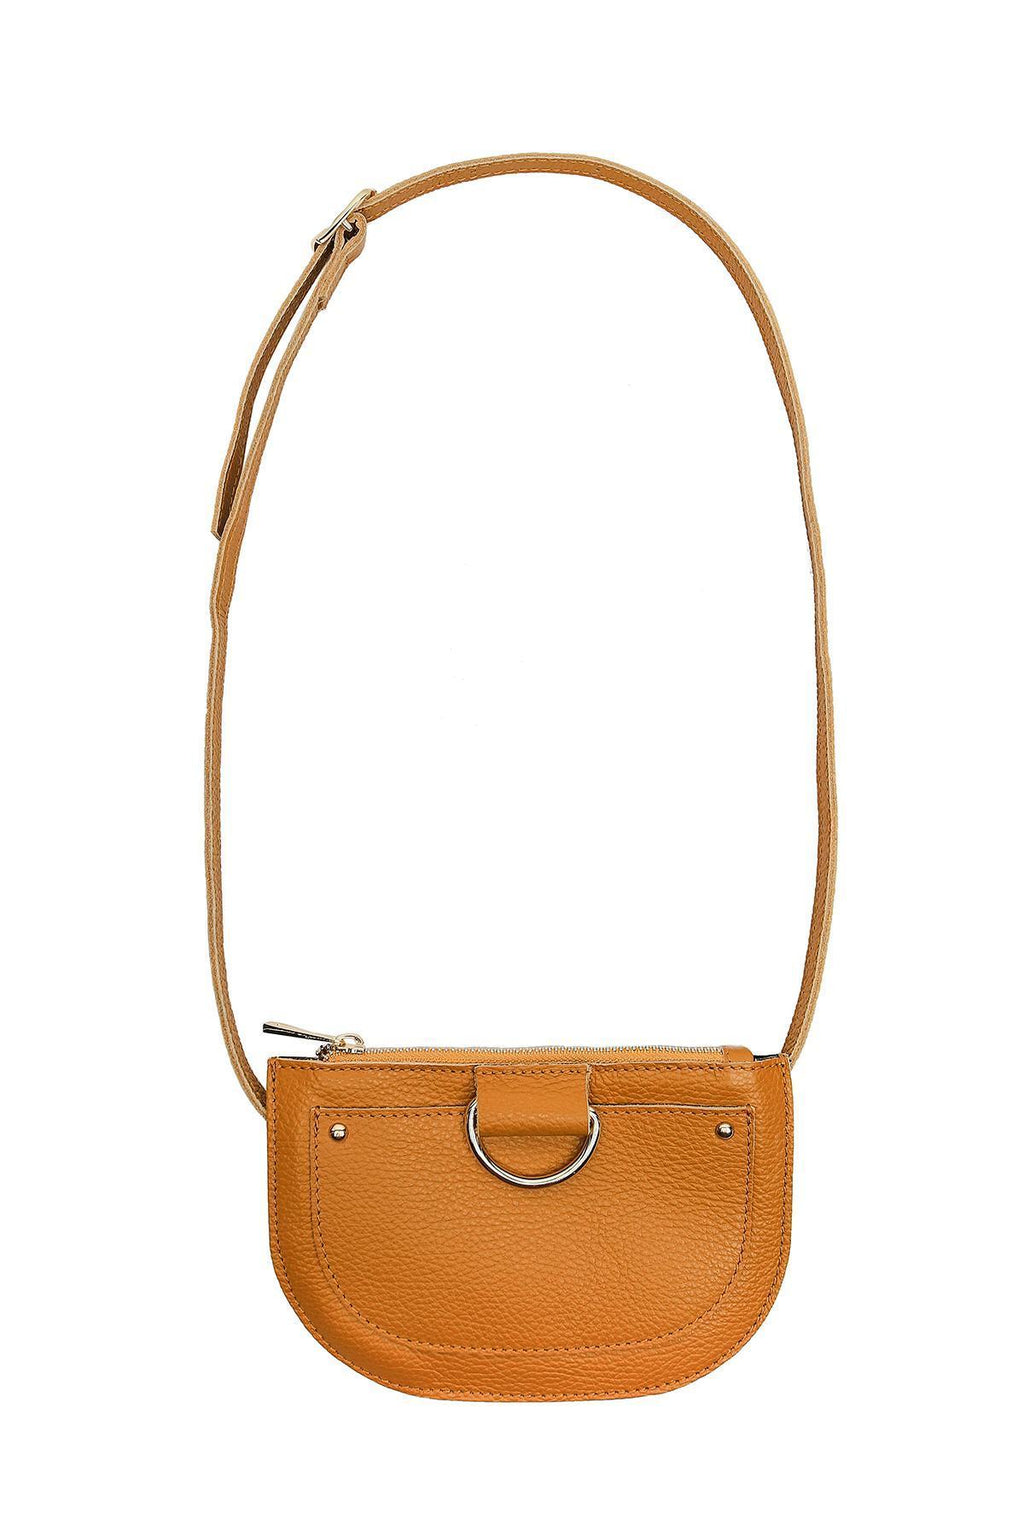 Cherry Paris - Grace bum bag yellow mustard